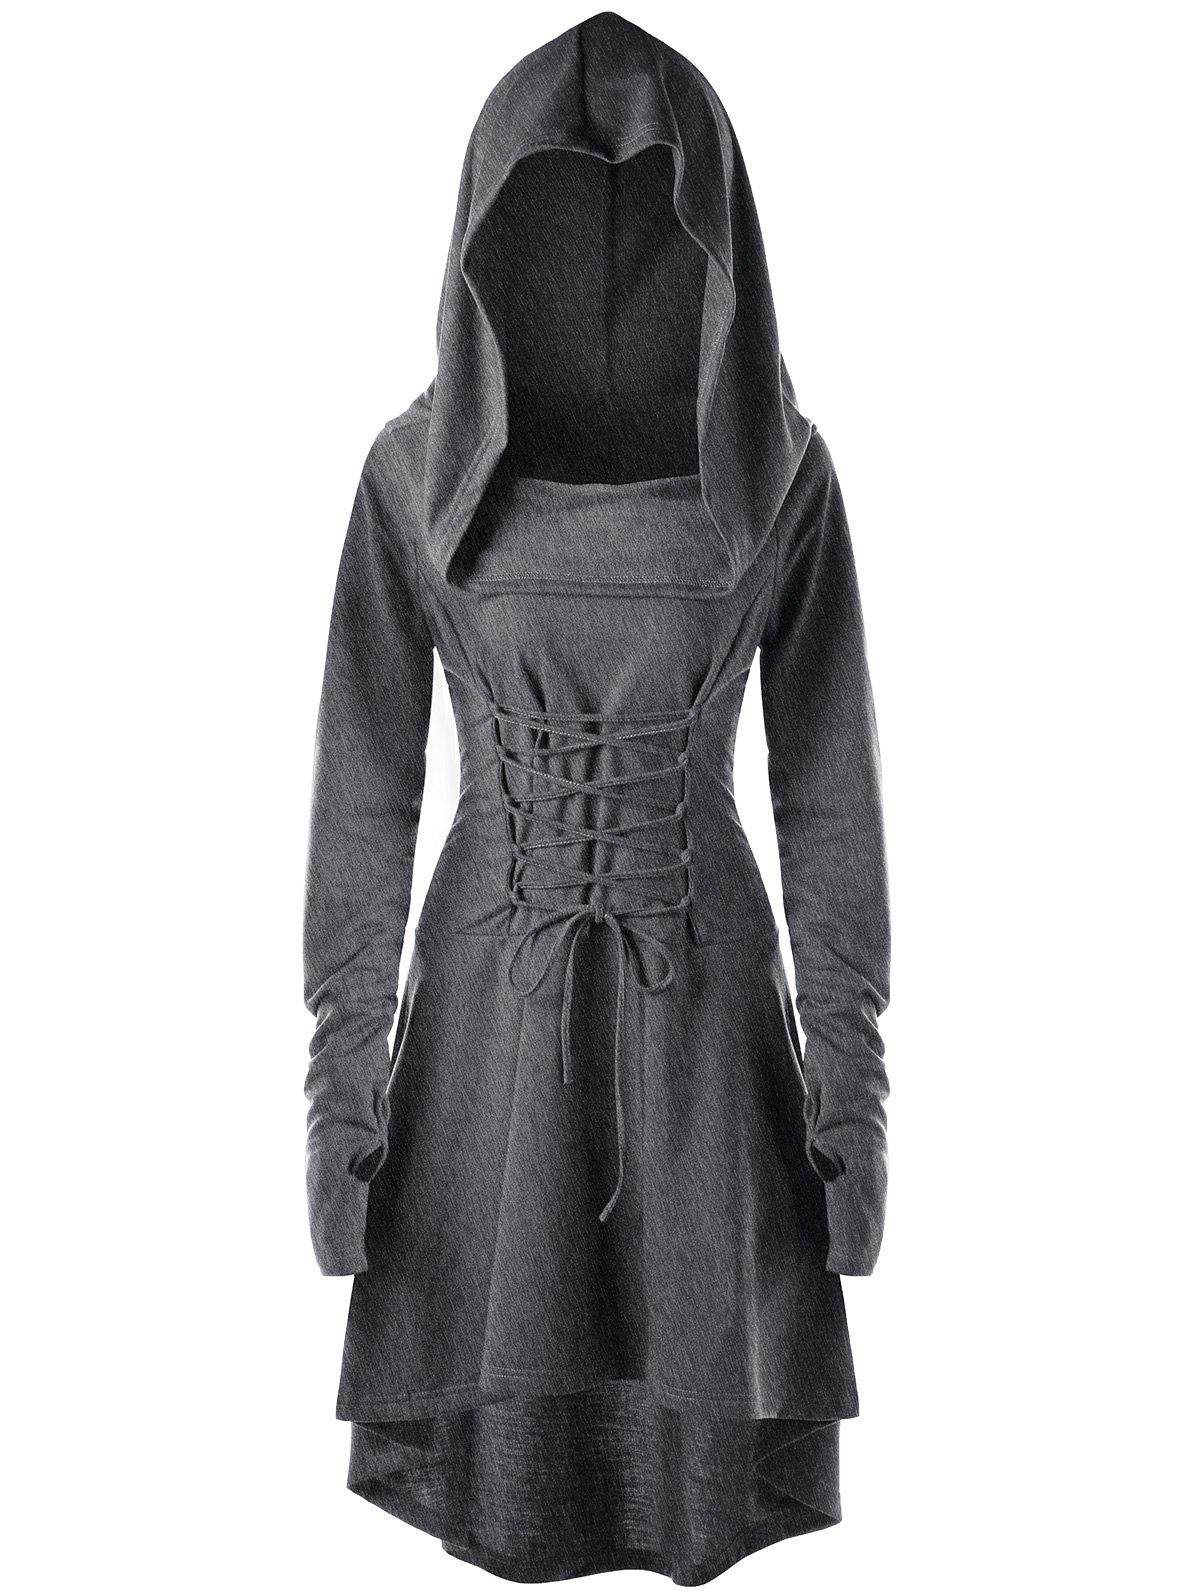 Lace Up Hooded High Low Dress - DARK HEATHER GRAY M